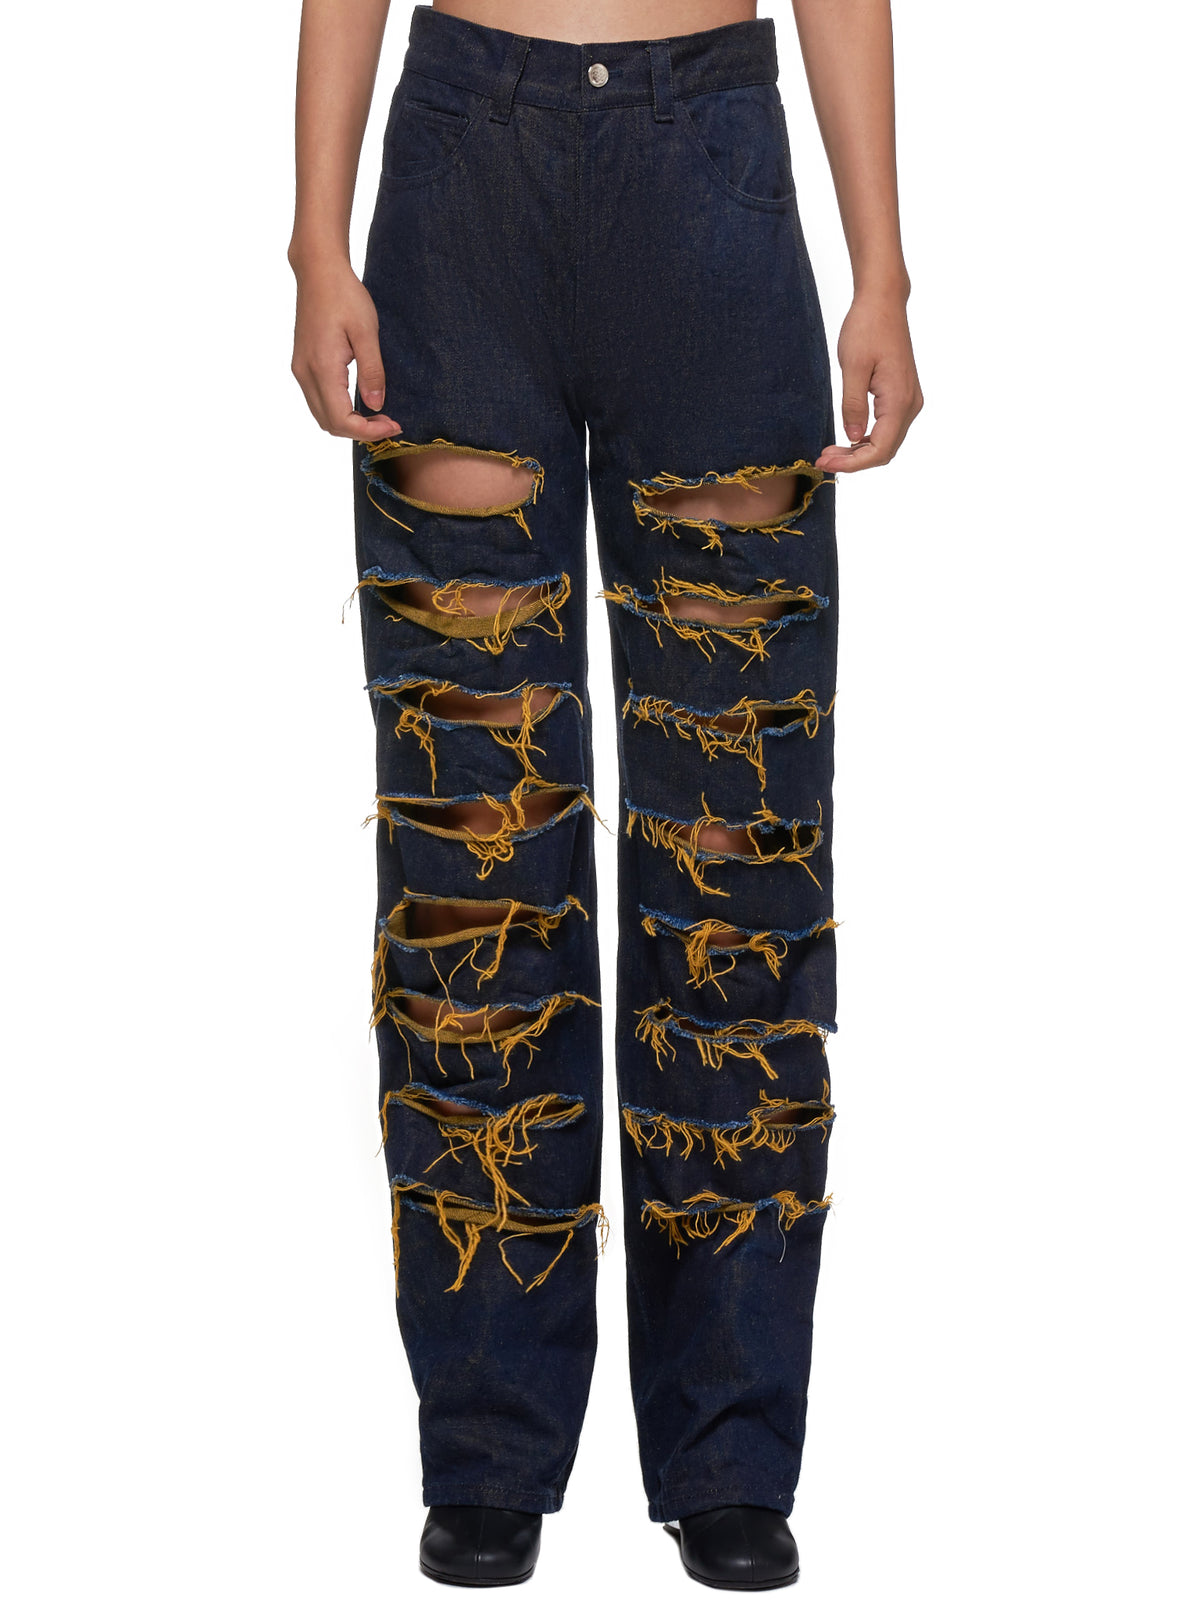 Asen Jeans by Leo, available on hlorenzo.com Kendall Jenner Pants SIMILAR PRODUCT